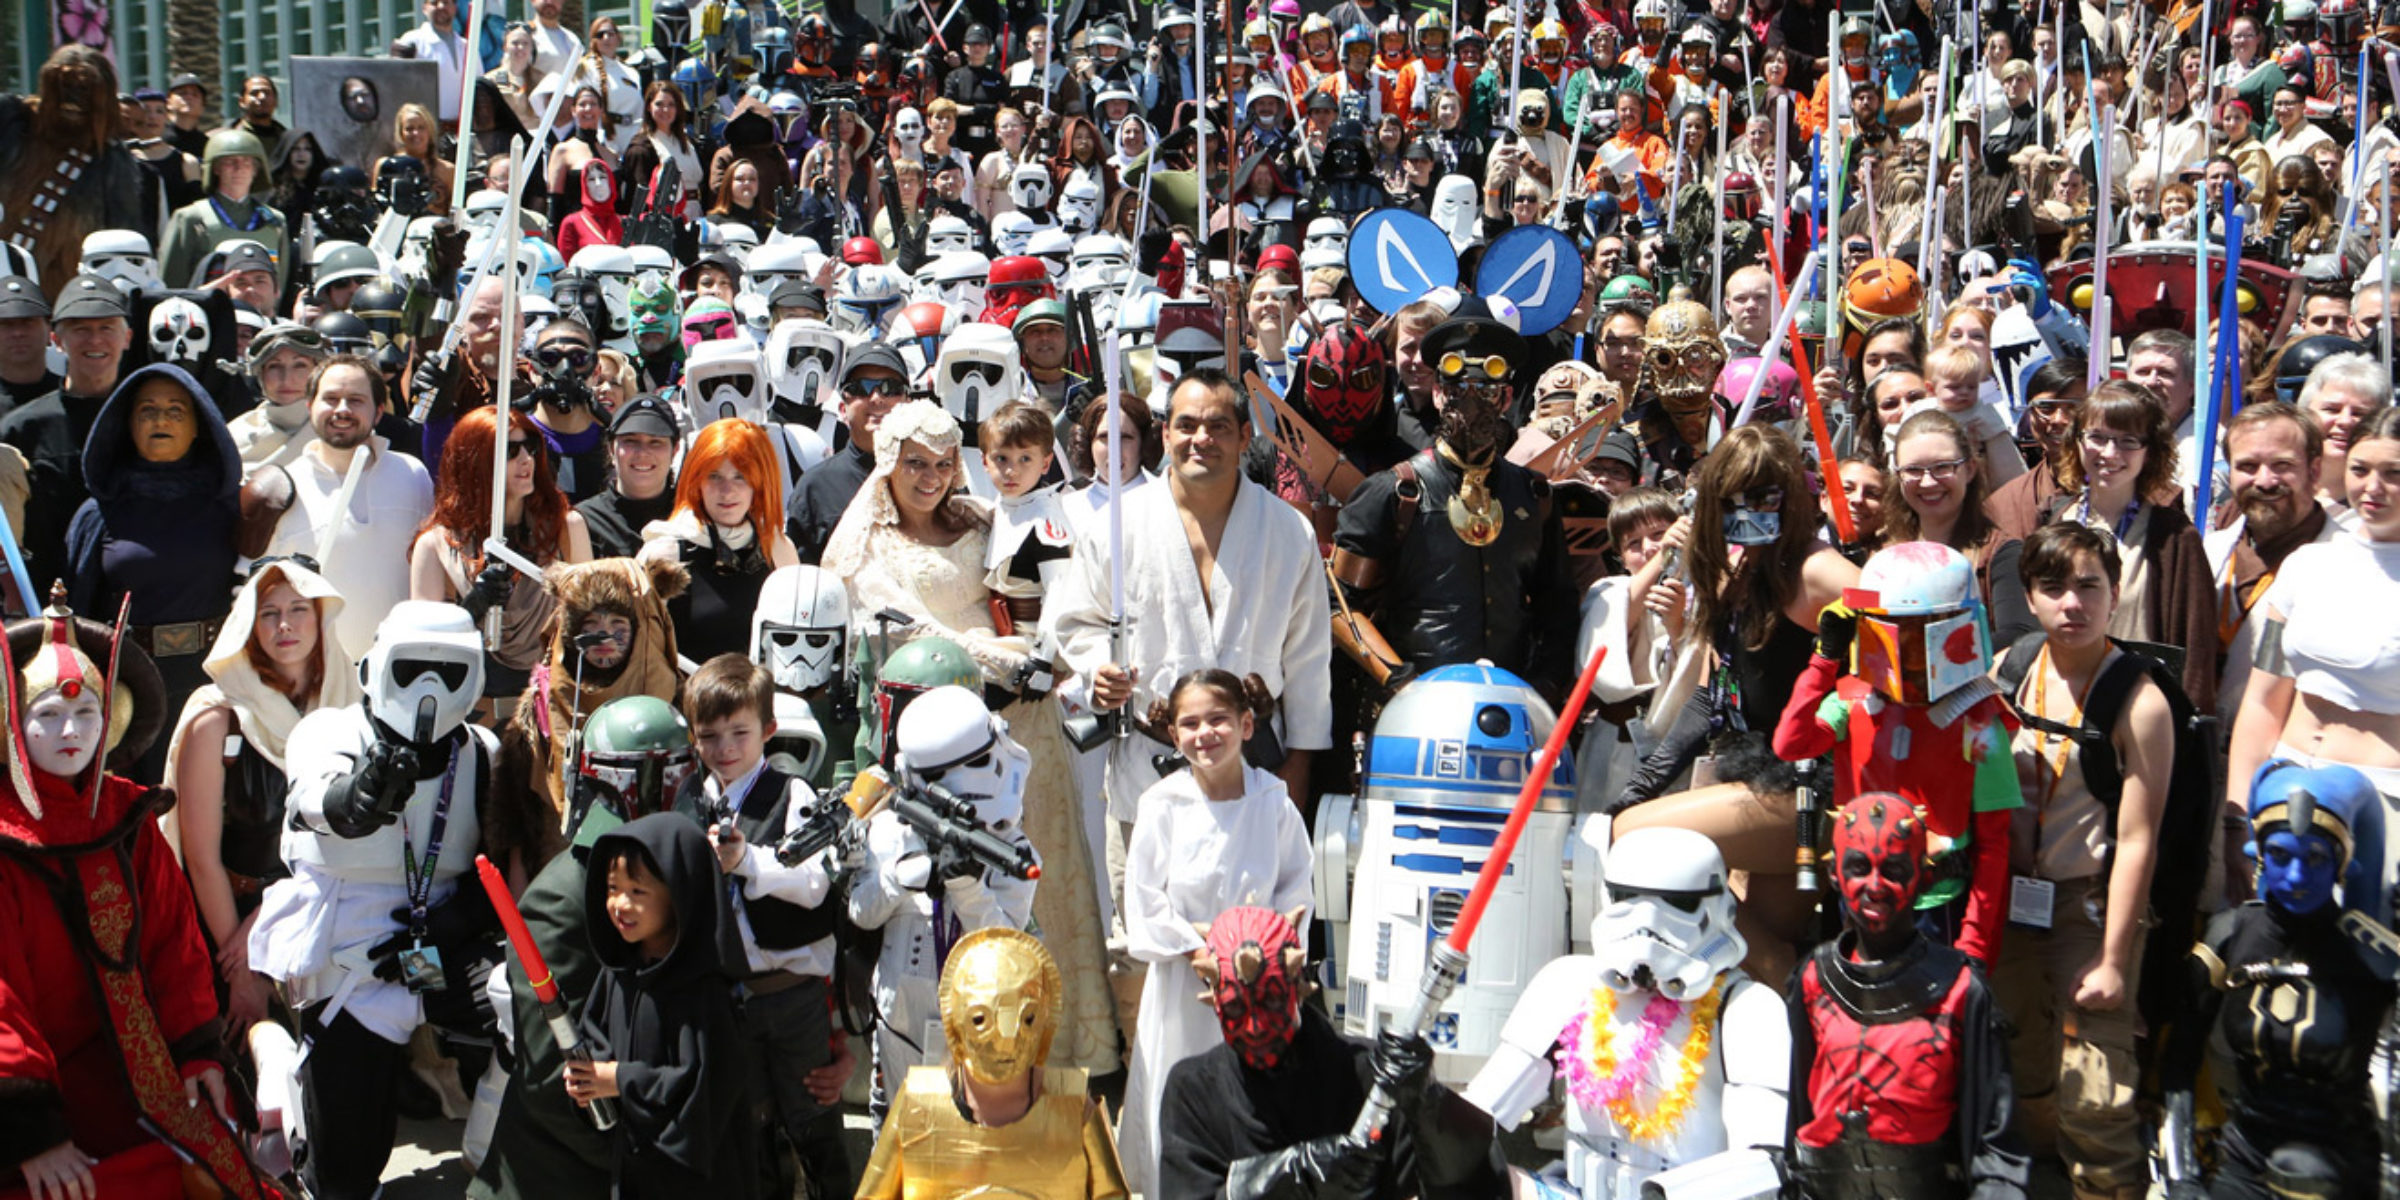 star wars celebration cosplayers